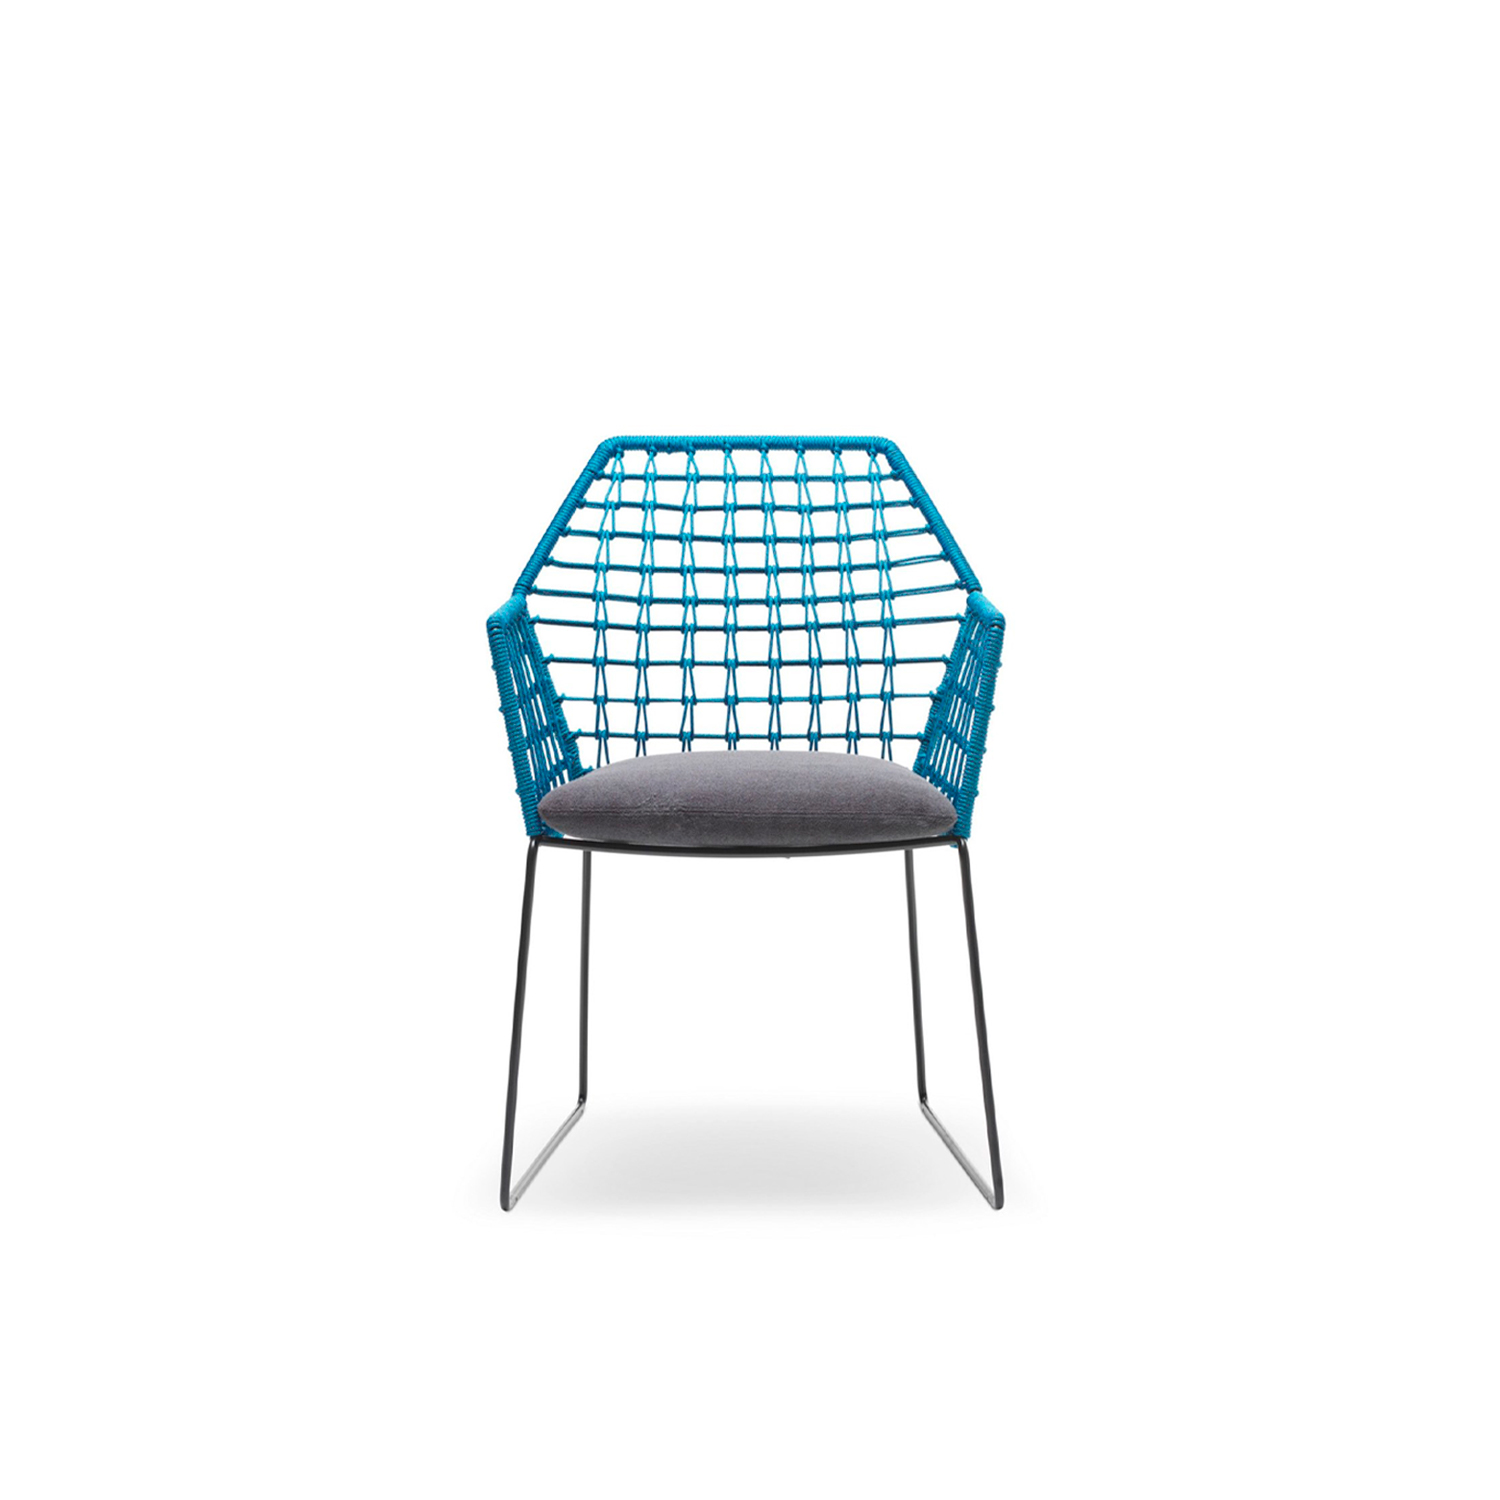 New York Soleil Chair with Armrests - New York Soleil is a garden chair with armrests in removable fabric, part of the homonymous collection.  The New York Soleil outdoor collection is a line of exclusive woven seating made entirely by hand. New York Soleil is the product of careful research into materials and the desire to maintain the unique original design. Woven nautical cords of different colors softly cover the painted metal rod structure. The ergonomic cushion is covered in a quick-drying, non-absorbent technical fabric, and its superior performance in the Martindale test guarantees abrasion resistance as well as hygienic breathability. In 2020 the collection adds a new element: the Lounge Armchair.  New York Soleil embodies outdoor living with a casual style and colorful charm. It is available in different blends and solid colors. The collection includes a sofa, a lounge armchair, an armchair, a pouf, a chair with or without armrests and a stool. Fully removable covers.  Additional removable cover is available, please enquire for prices.  Structure Material: White or Black Outdoor Painted Finish Materials Structure in 16 mm wire drawn for lounge armchair; in 12 mm wire drawn for sofa, armchair and pouf; in 11 mm wire drawn for chair with or without armrests and for stools. For all elements, structure is covered with plaiting of 4 mm diameter of polyester ropes. For sofa, armchair, chairs and stools, seat cushion is filled with a special 30 water-draining polyurethane, covered with polyester fiber 300gr/sqm on 100% polyester lining. Lounge armchair's seat cushion is made with flexible glass fiber slats inserted in the core of variable density polyurethane foam, covered with 600 gr/sqm polyester fiber and clothed with water-repellent heat-sealed fabric. Back and arm rests cushions are in polyester fiber in TNT fabric cover, clothed with water-repellent heat-sealed for fabric provided with a breathable band. | Matter of Stuff